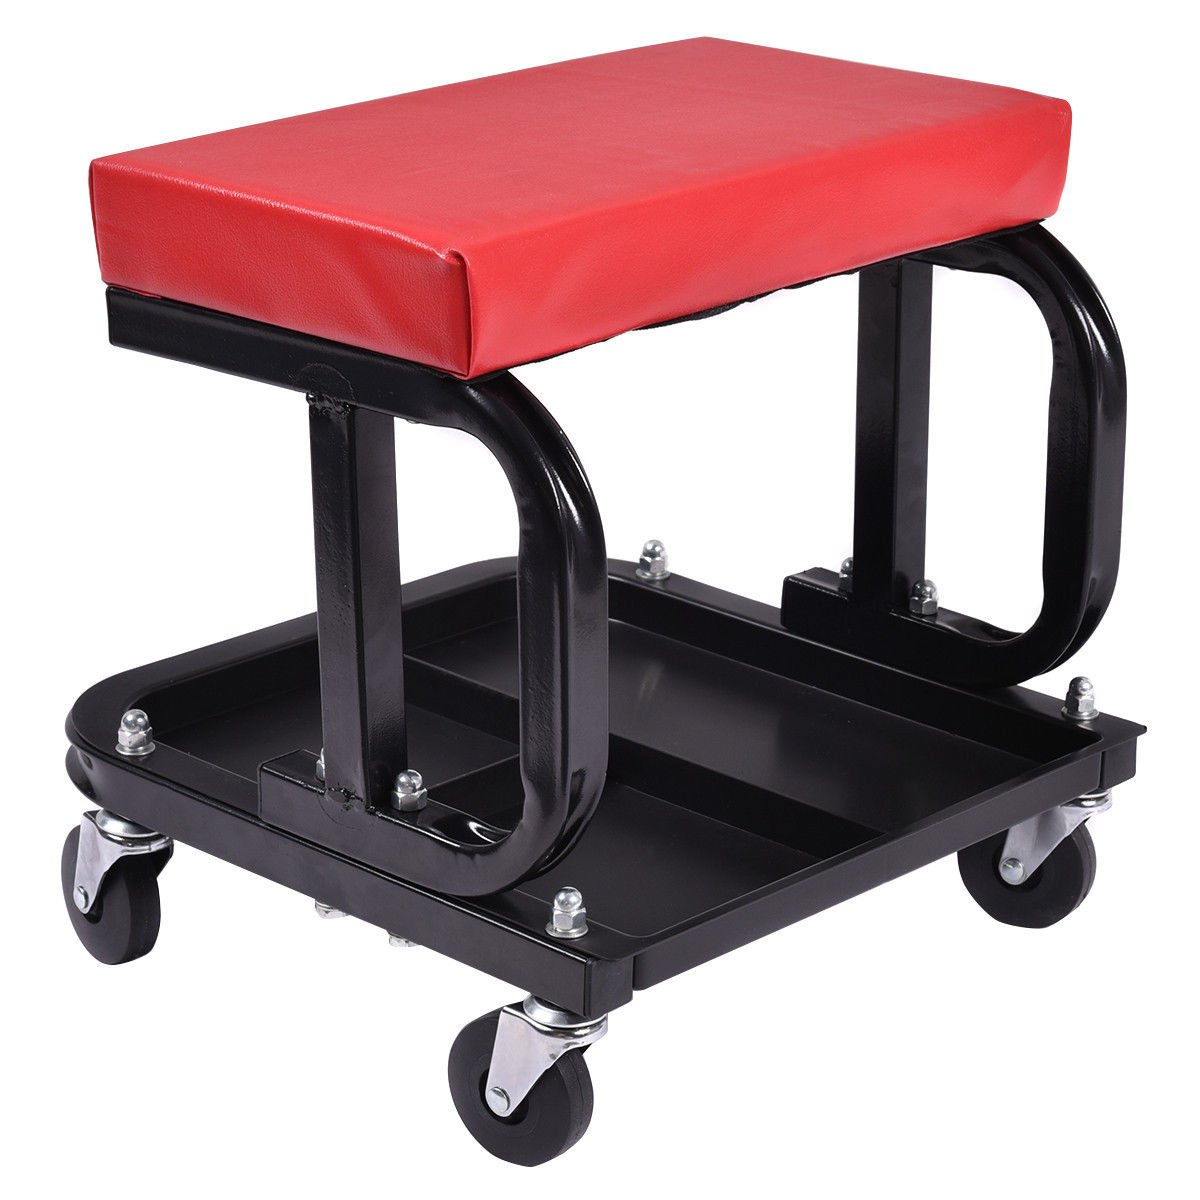 Goplus Adjustable Rolling Seat Creeper Pneumatic Padded Chair with Tray for Repair Shop Garage (Style 1)